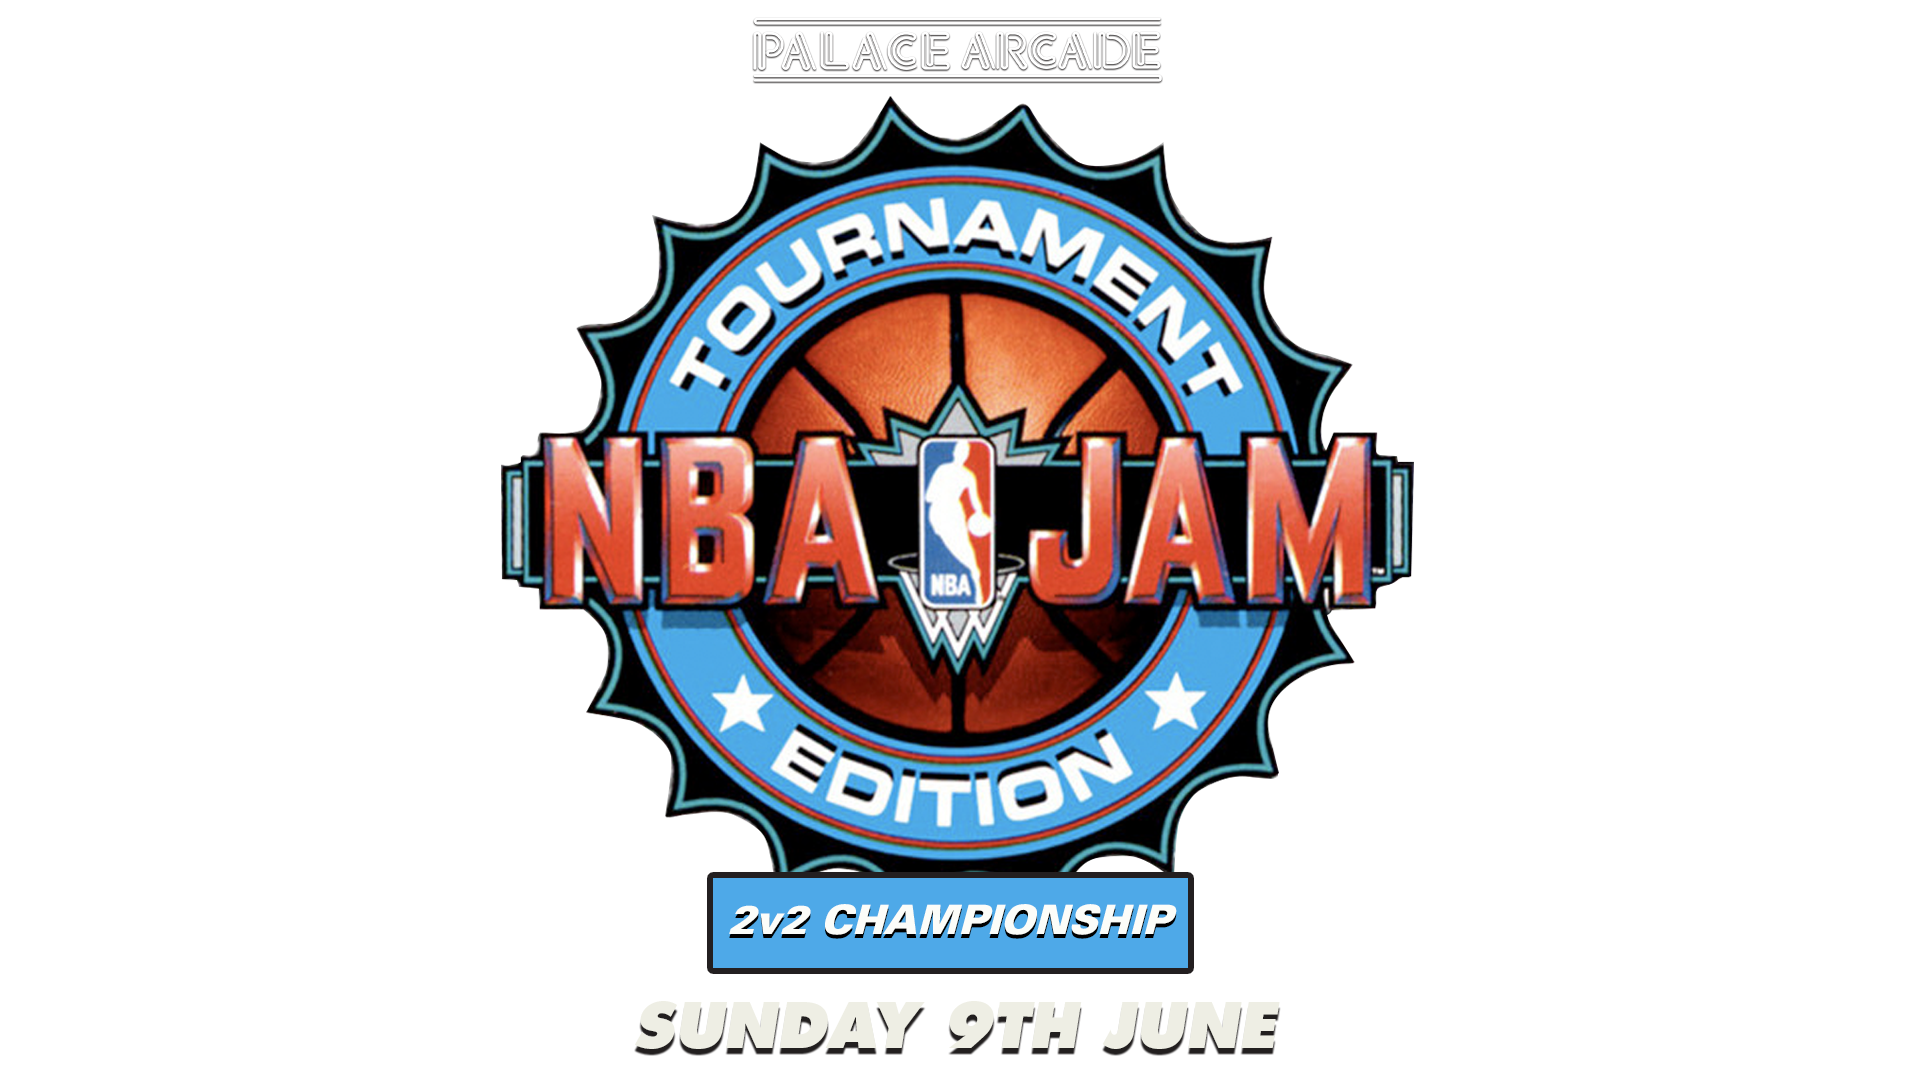 Tickets for NBA JAM 2v2 Tournament in Northbridge from Ticketbooth